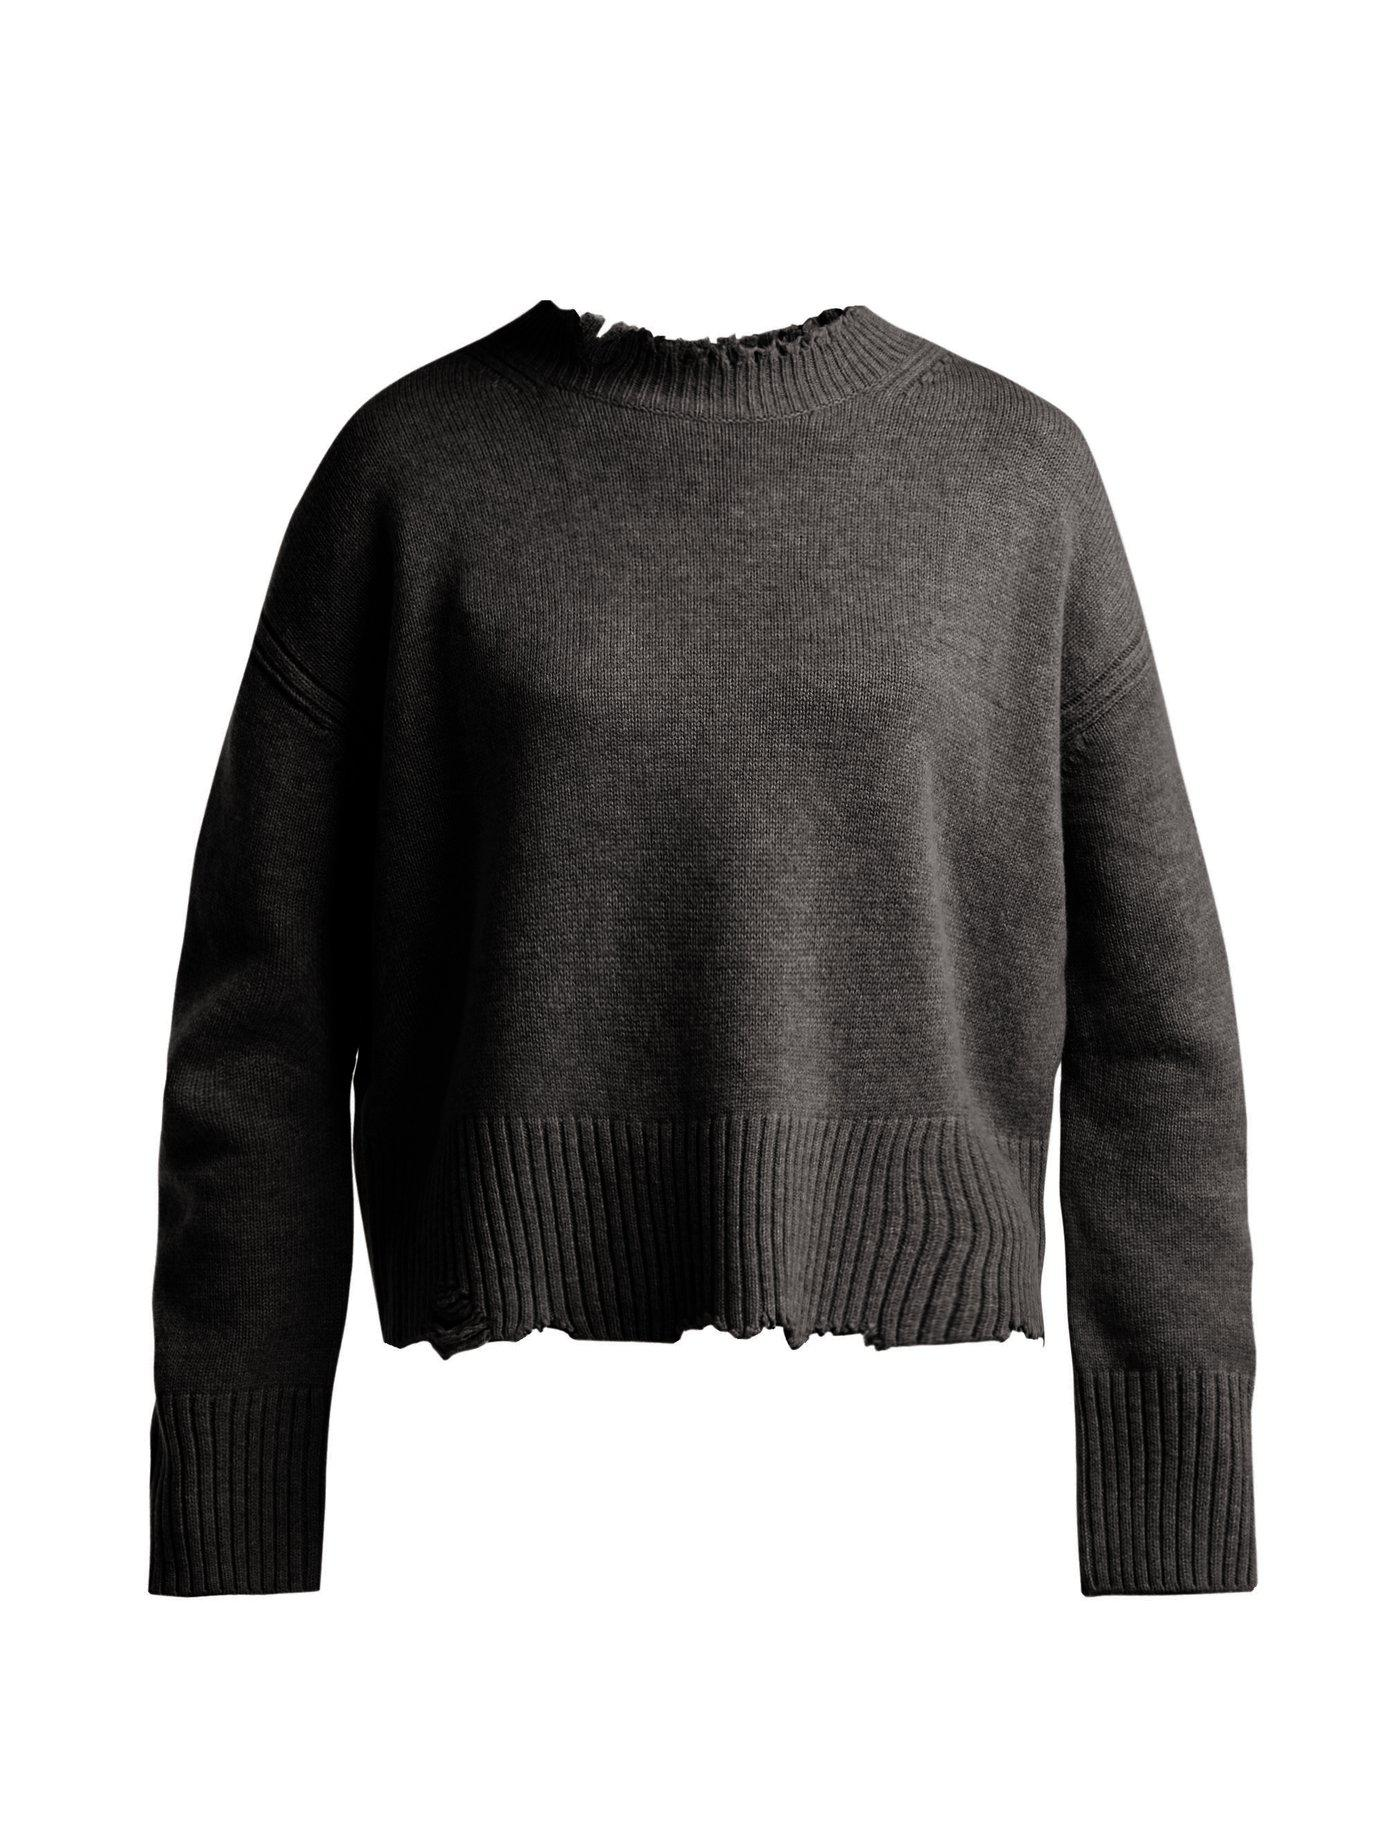 078bdc374cb09 Lyst - Helmut Lang Distressed Crew Neck Sweater in Gray